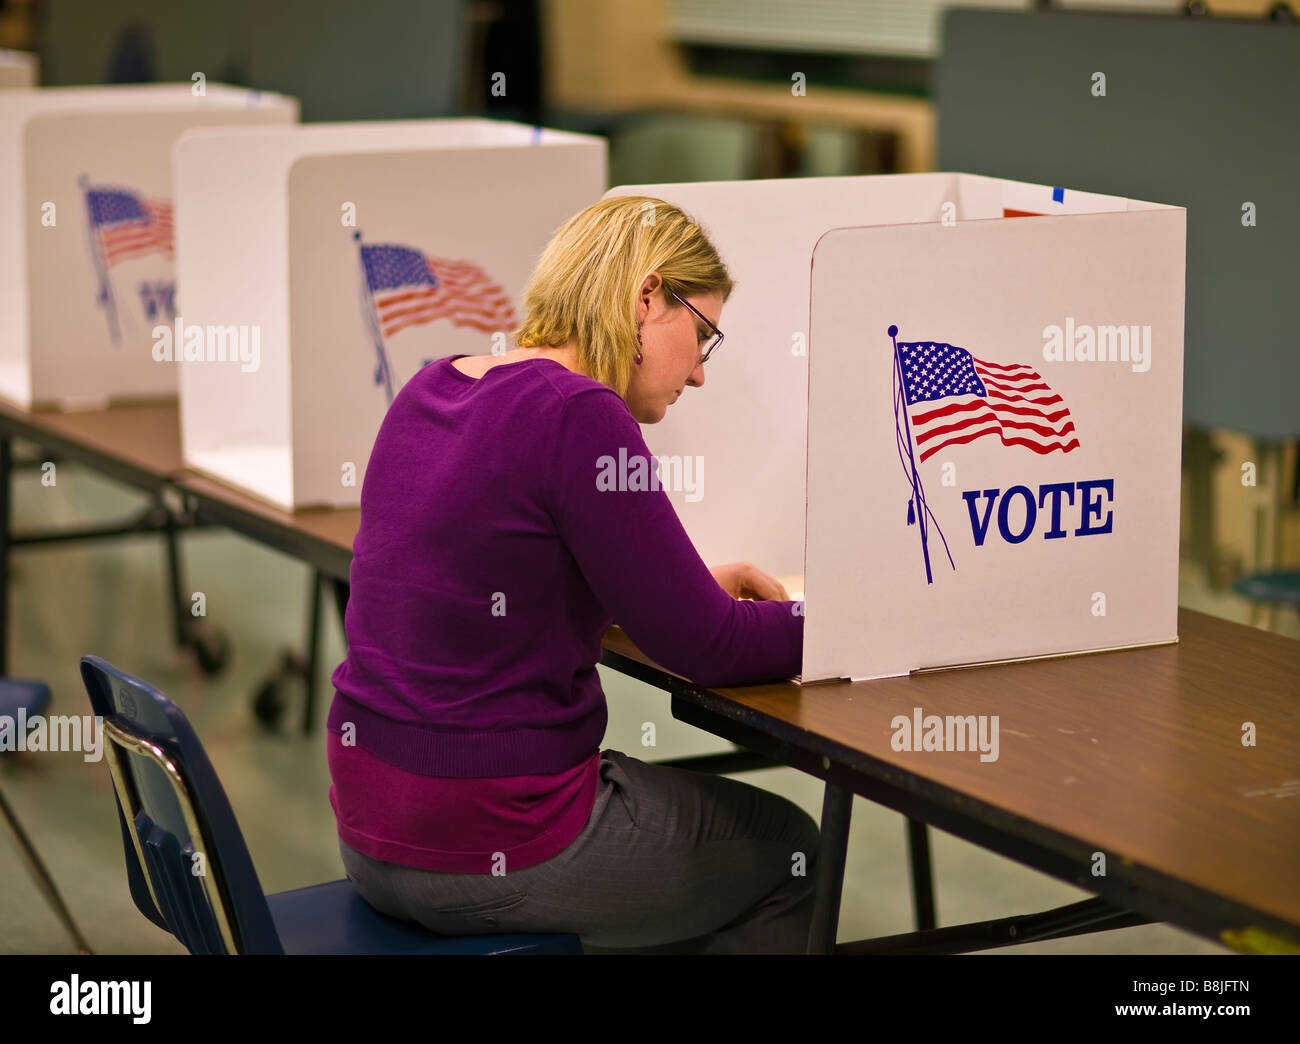 FAIRFAX COUNTY, VIRGINIA USA - Woman voter at polls during presidential election November 4, 2008. - Stock Image